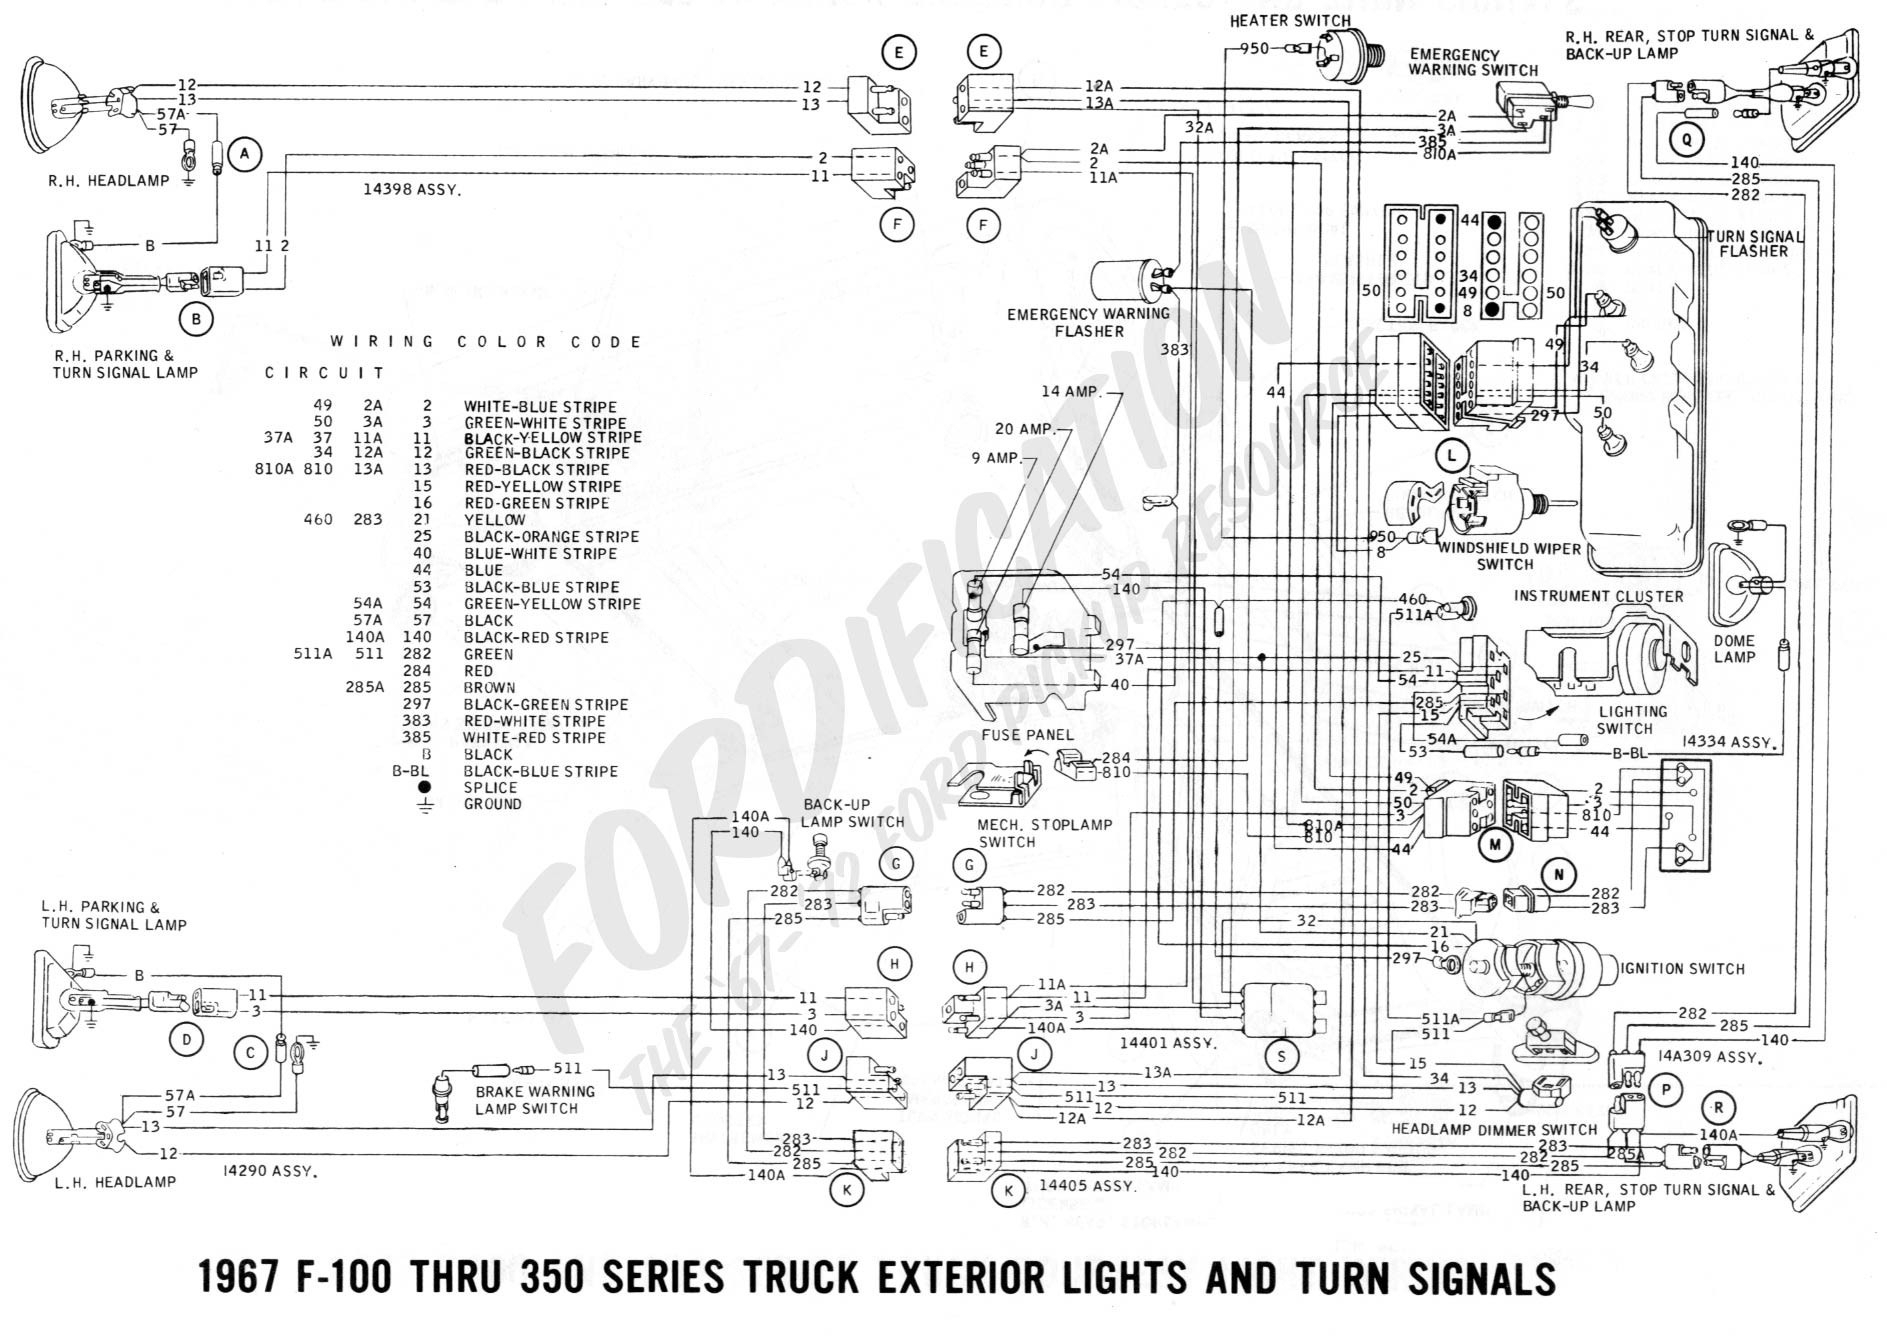 hight resolution of 1979 chevy truck wiring diagram turn signal wiring diagram chevy truck turn signal wiring diagram